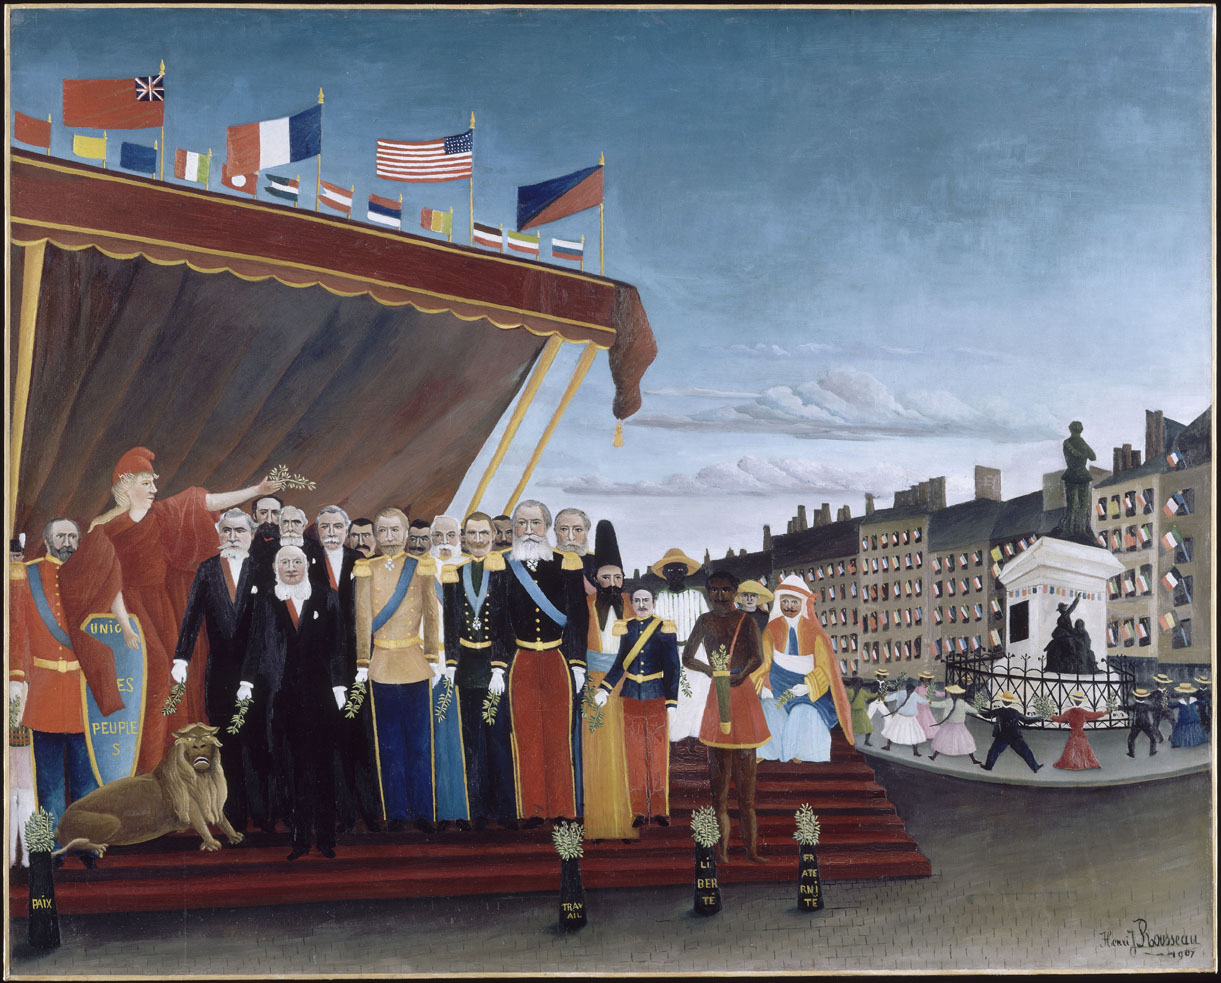 The Representatives of Foreign Powers Coming to Salute the Republic as a Sign of Peace, by Henri Rousseau, 1907. Musée Picasso, Paris.